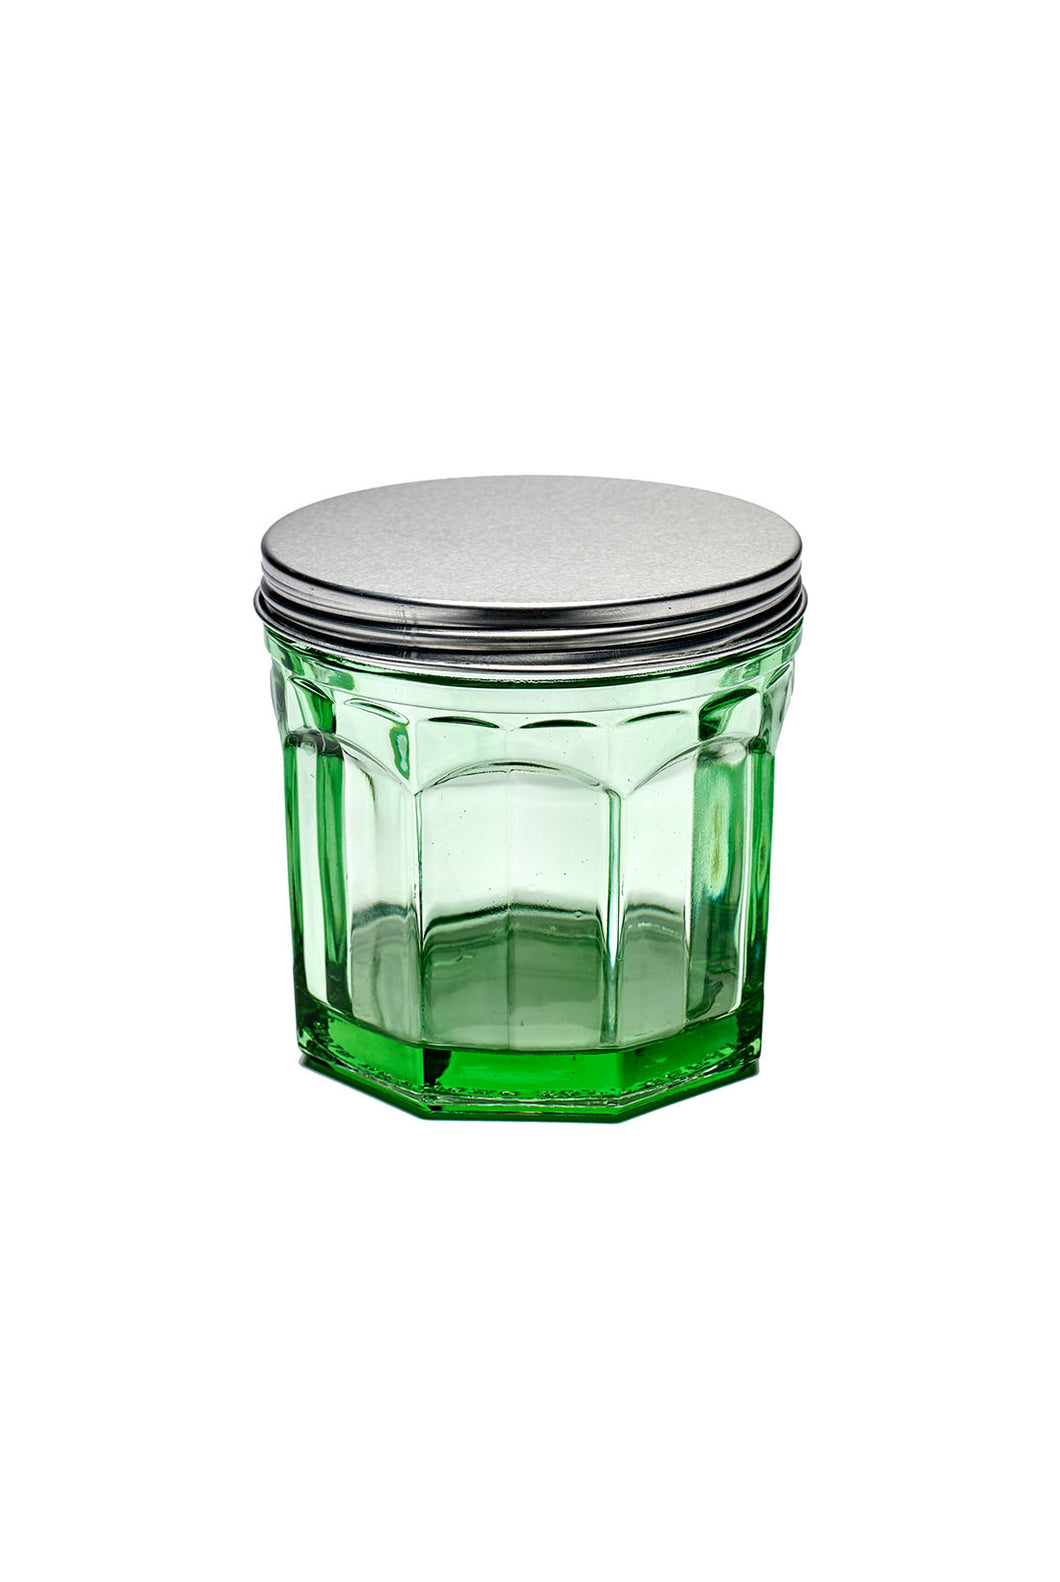 Serax - Fish & Fish Collection - Glass Jar with Lid - Small - Jadeite Green